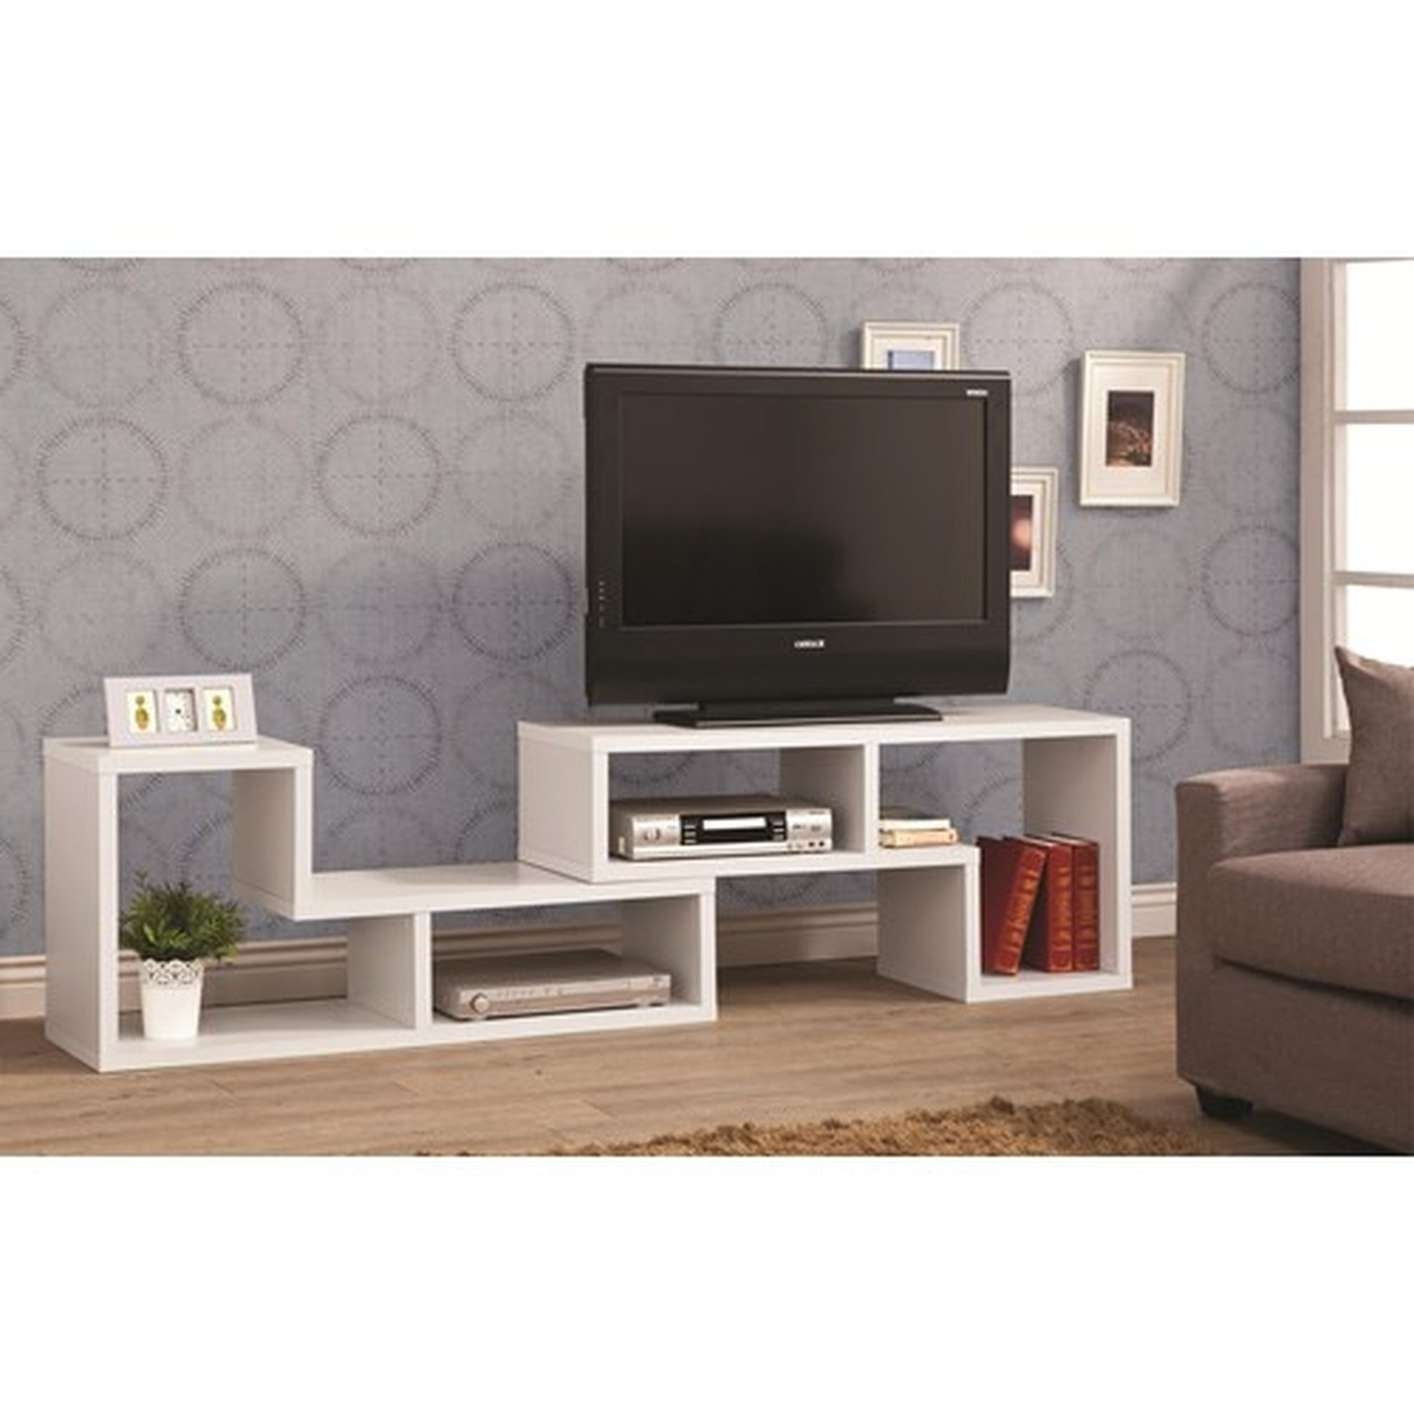 Living Room : Styled Modern Tv Stand In Orange And Black Finishing Intended For Hardwood Tv Stands (View 15 of 15)